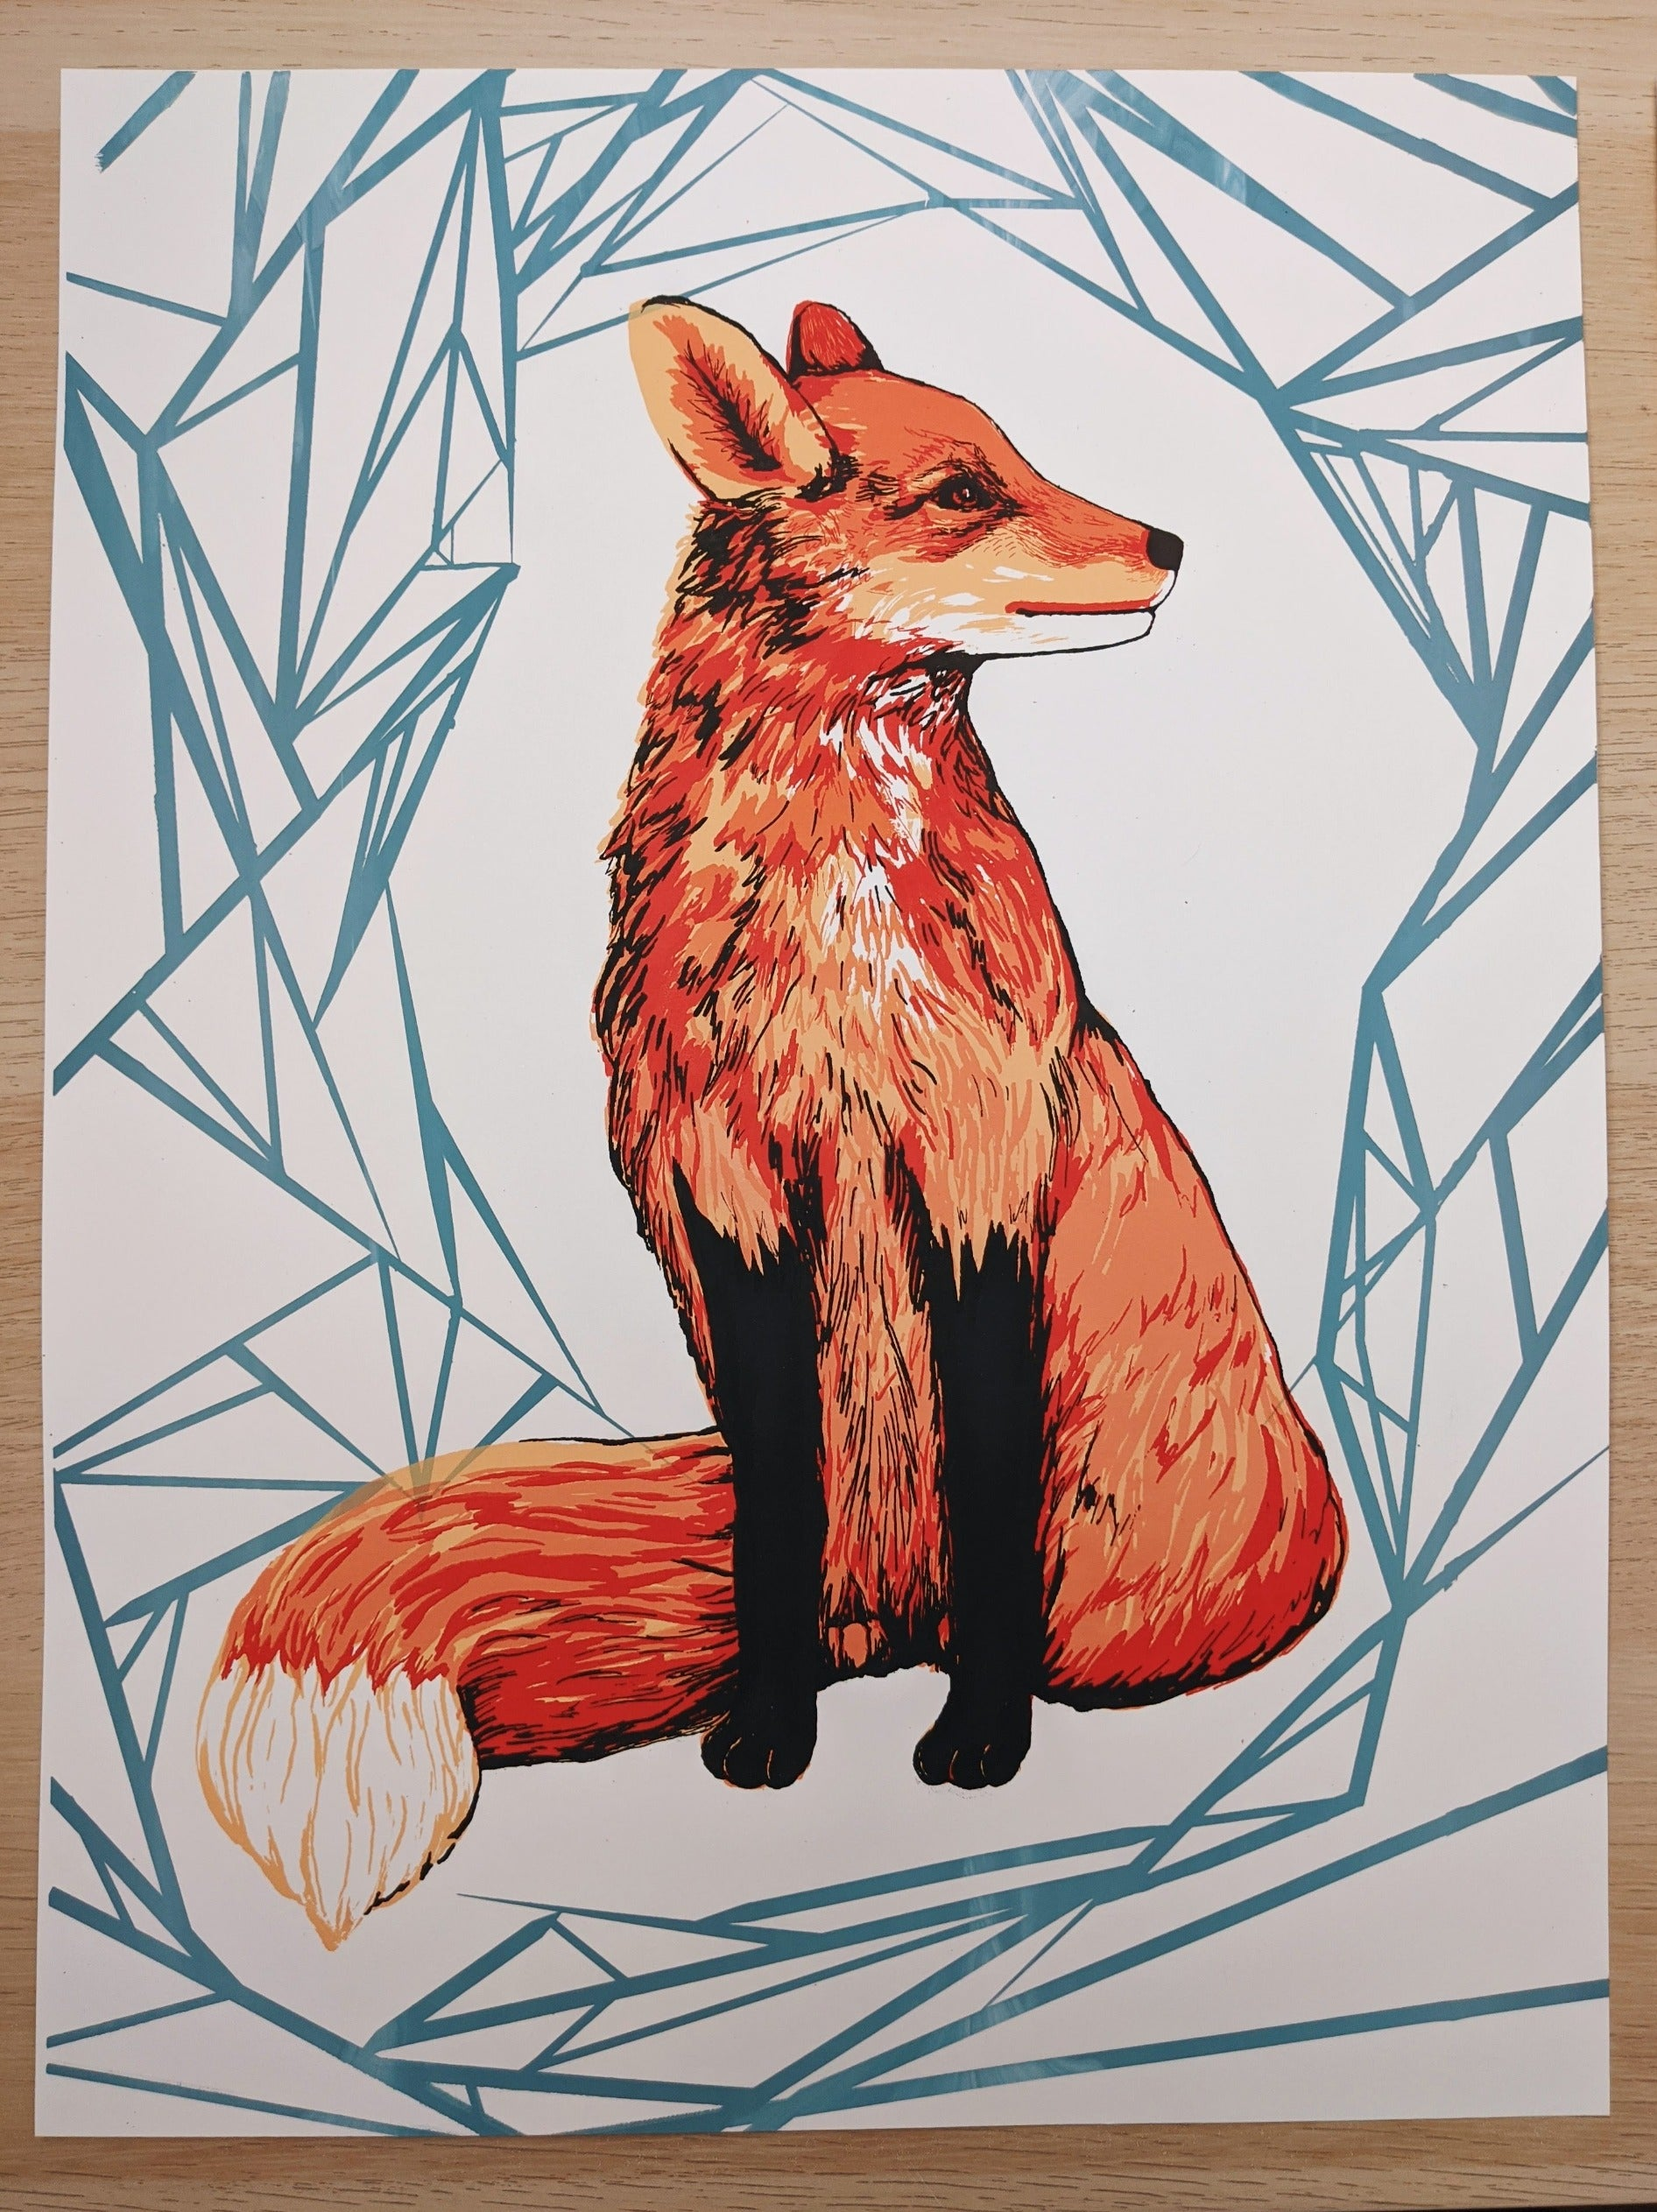 Fox - Handmade Limited Edition Screenprint - Kim Everhard Art